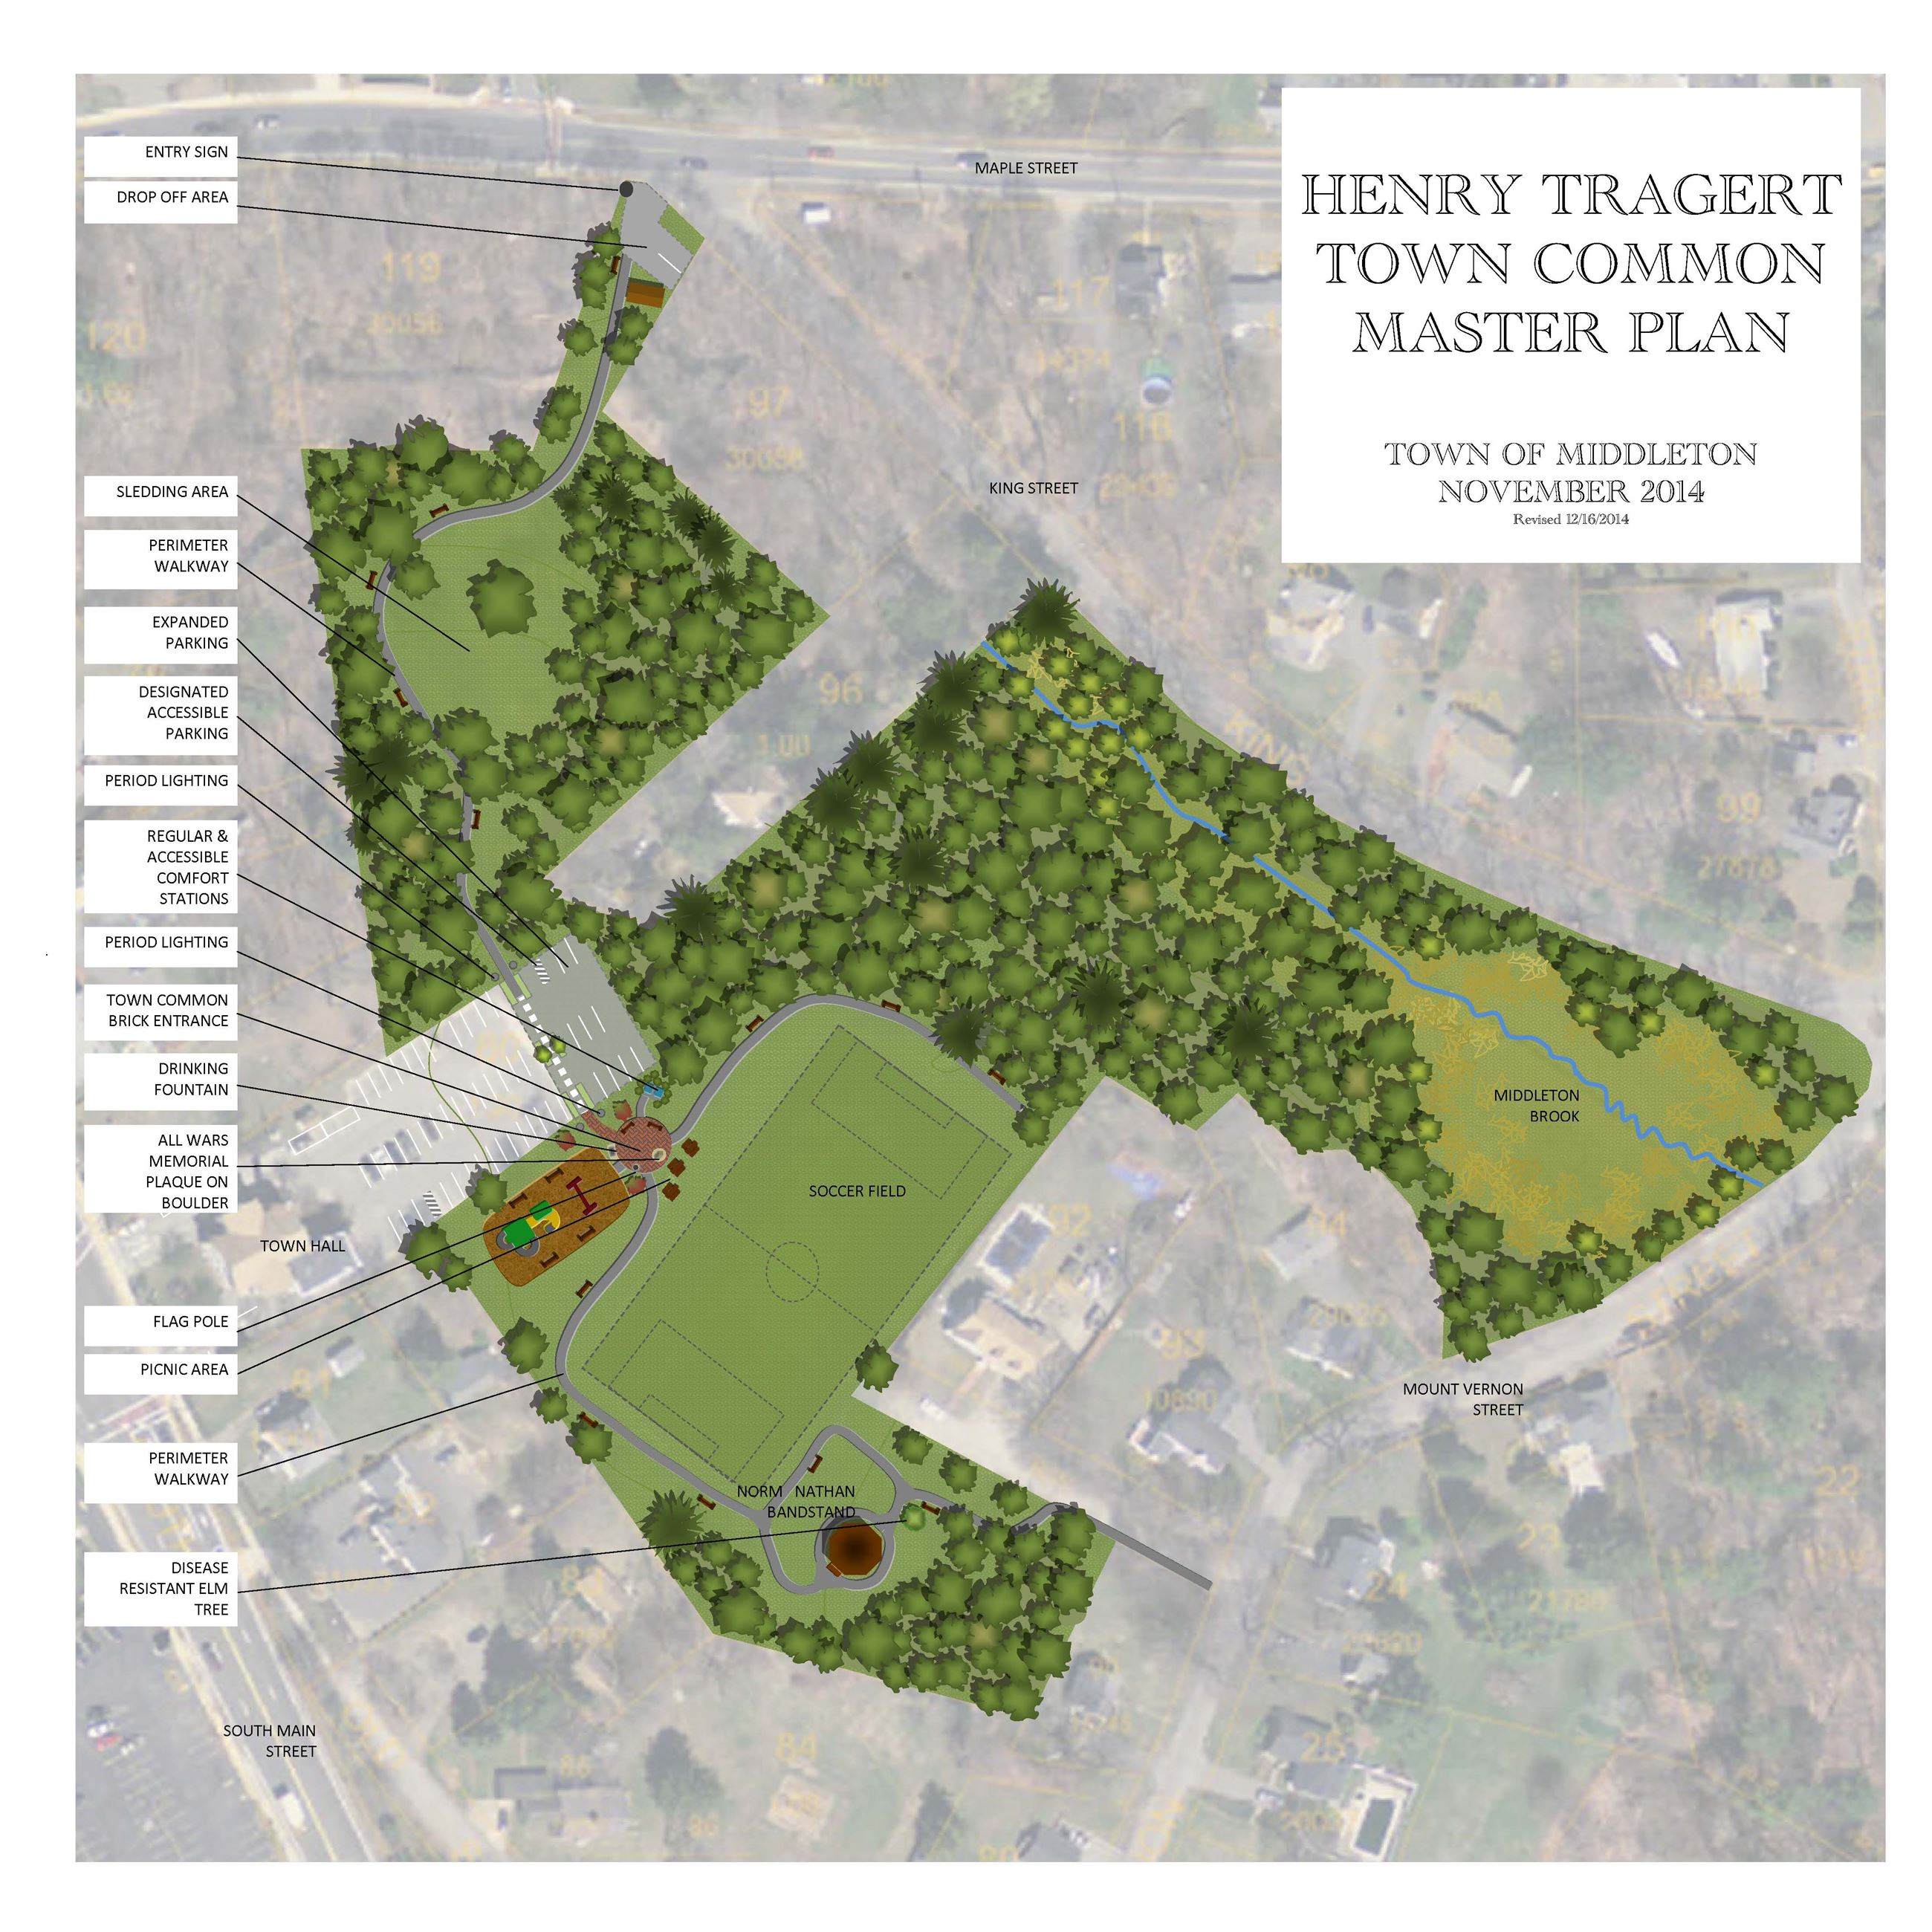 Henry Tragert Town Common Master Plan Visual